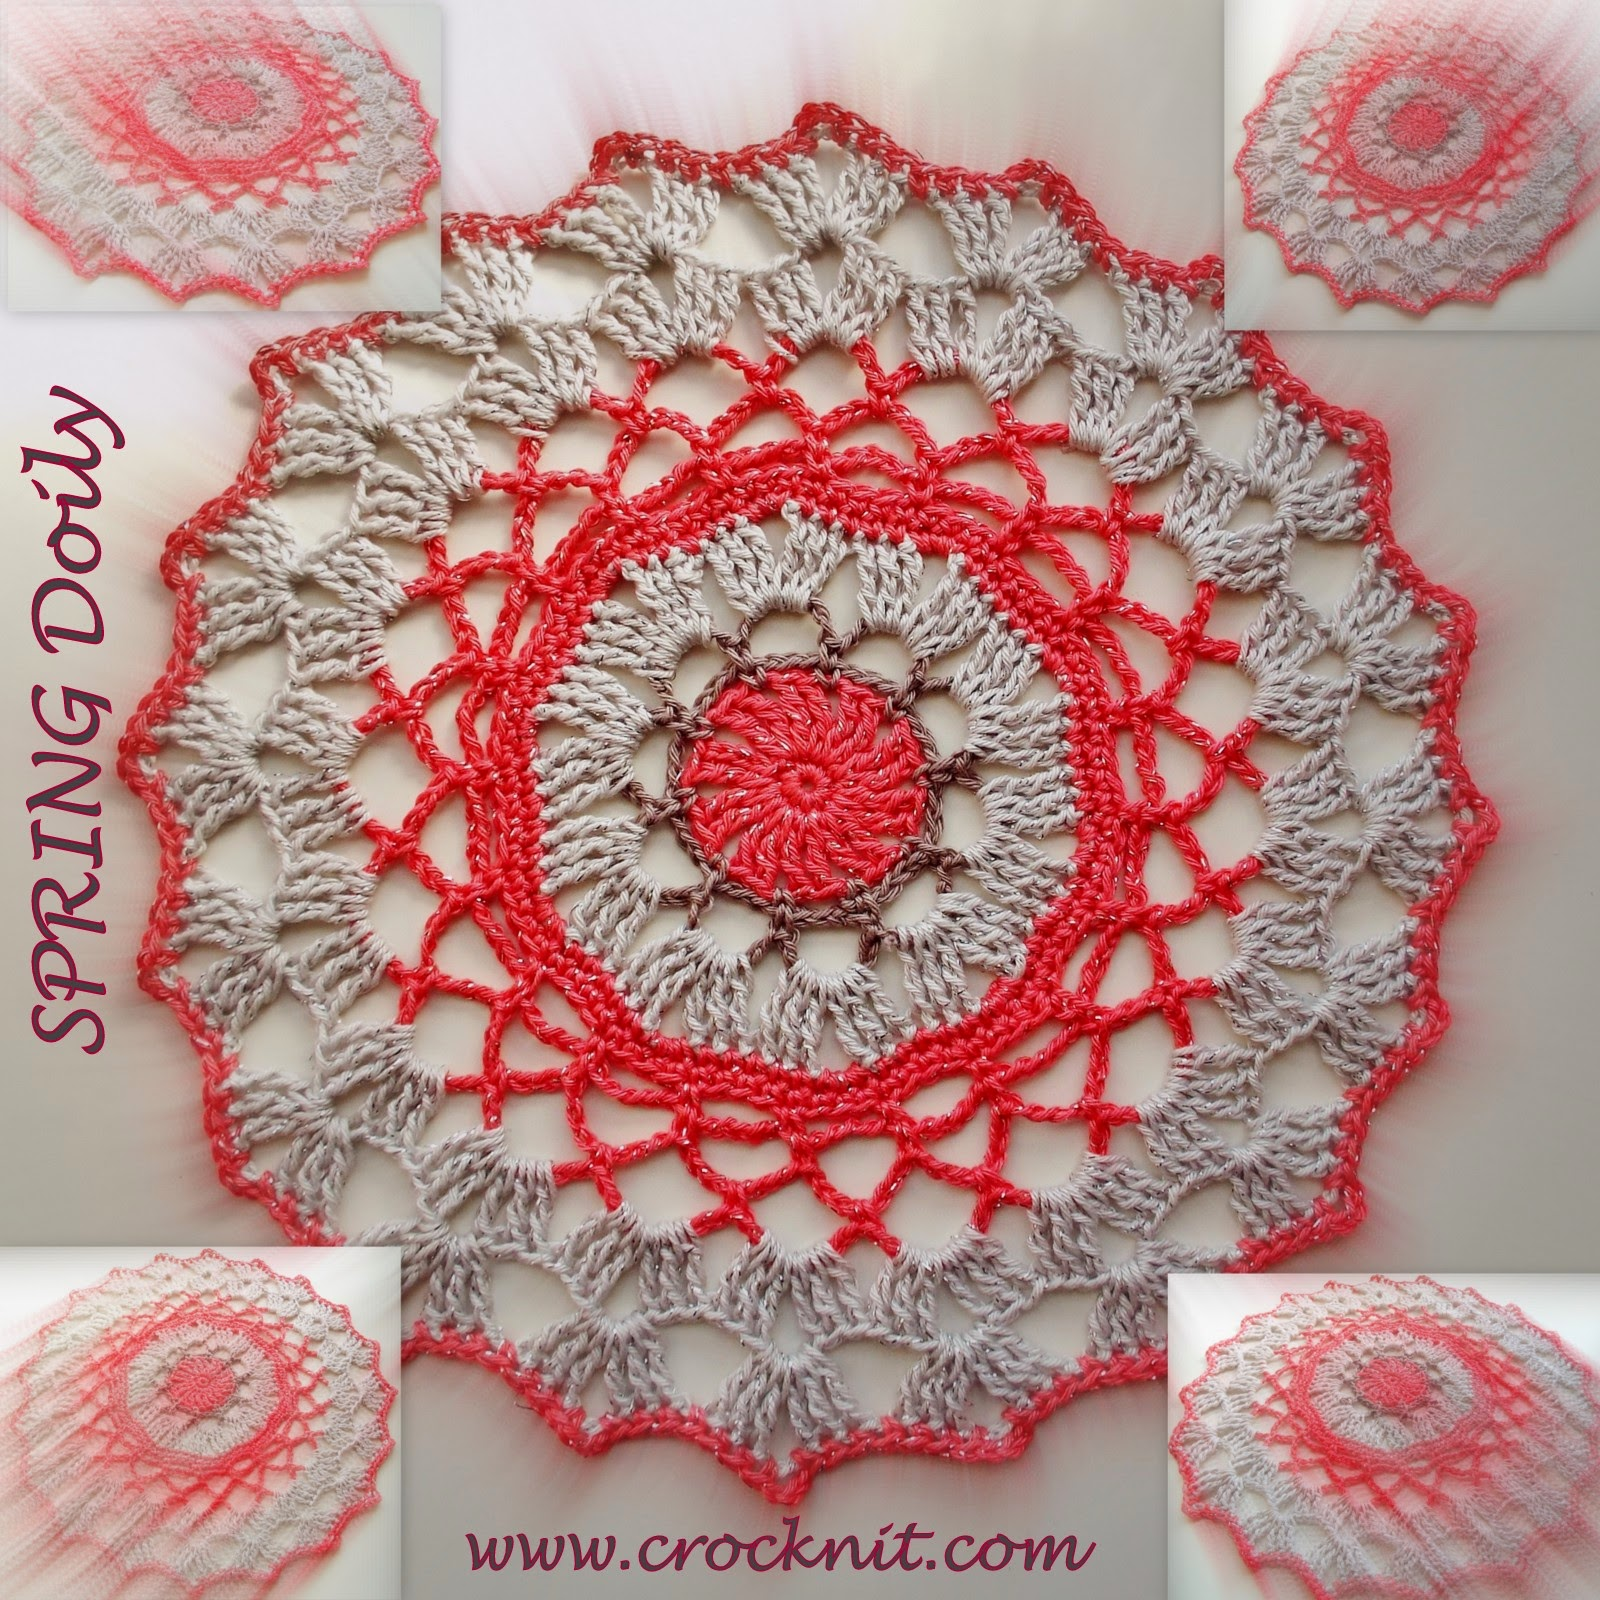 crochet pattern doily coaster spring cotton